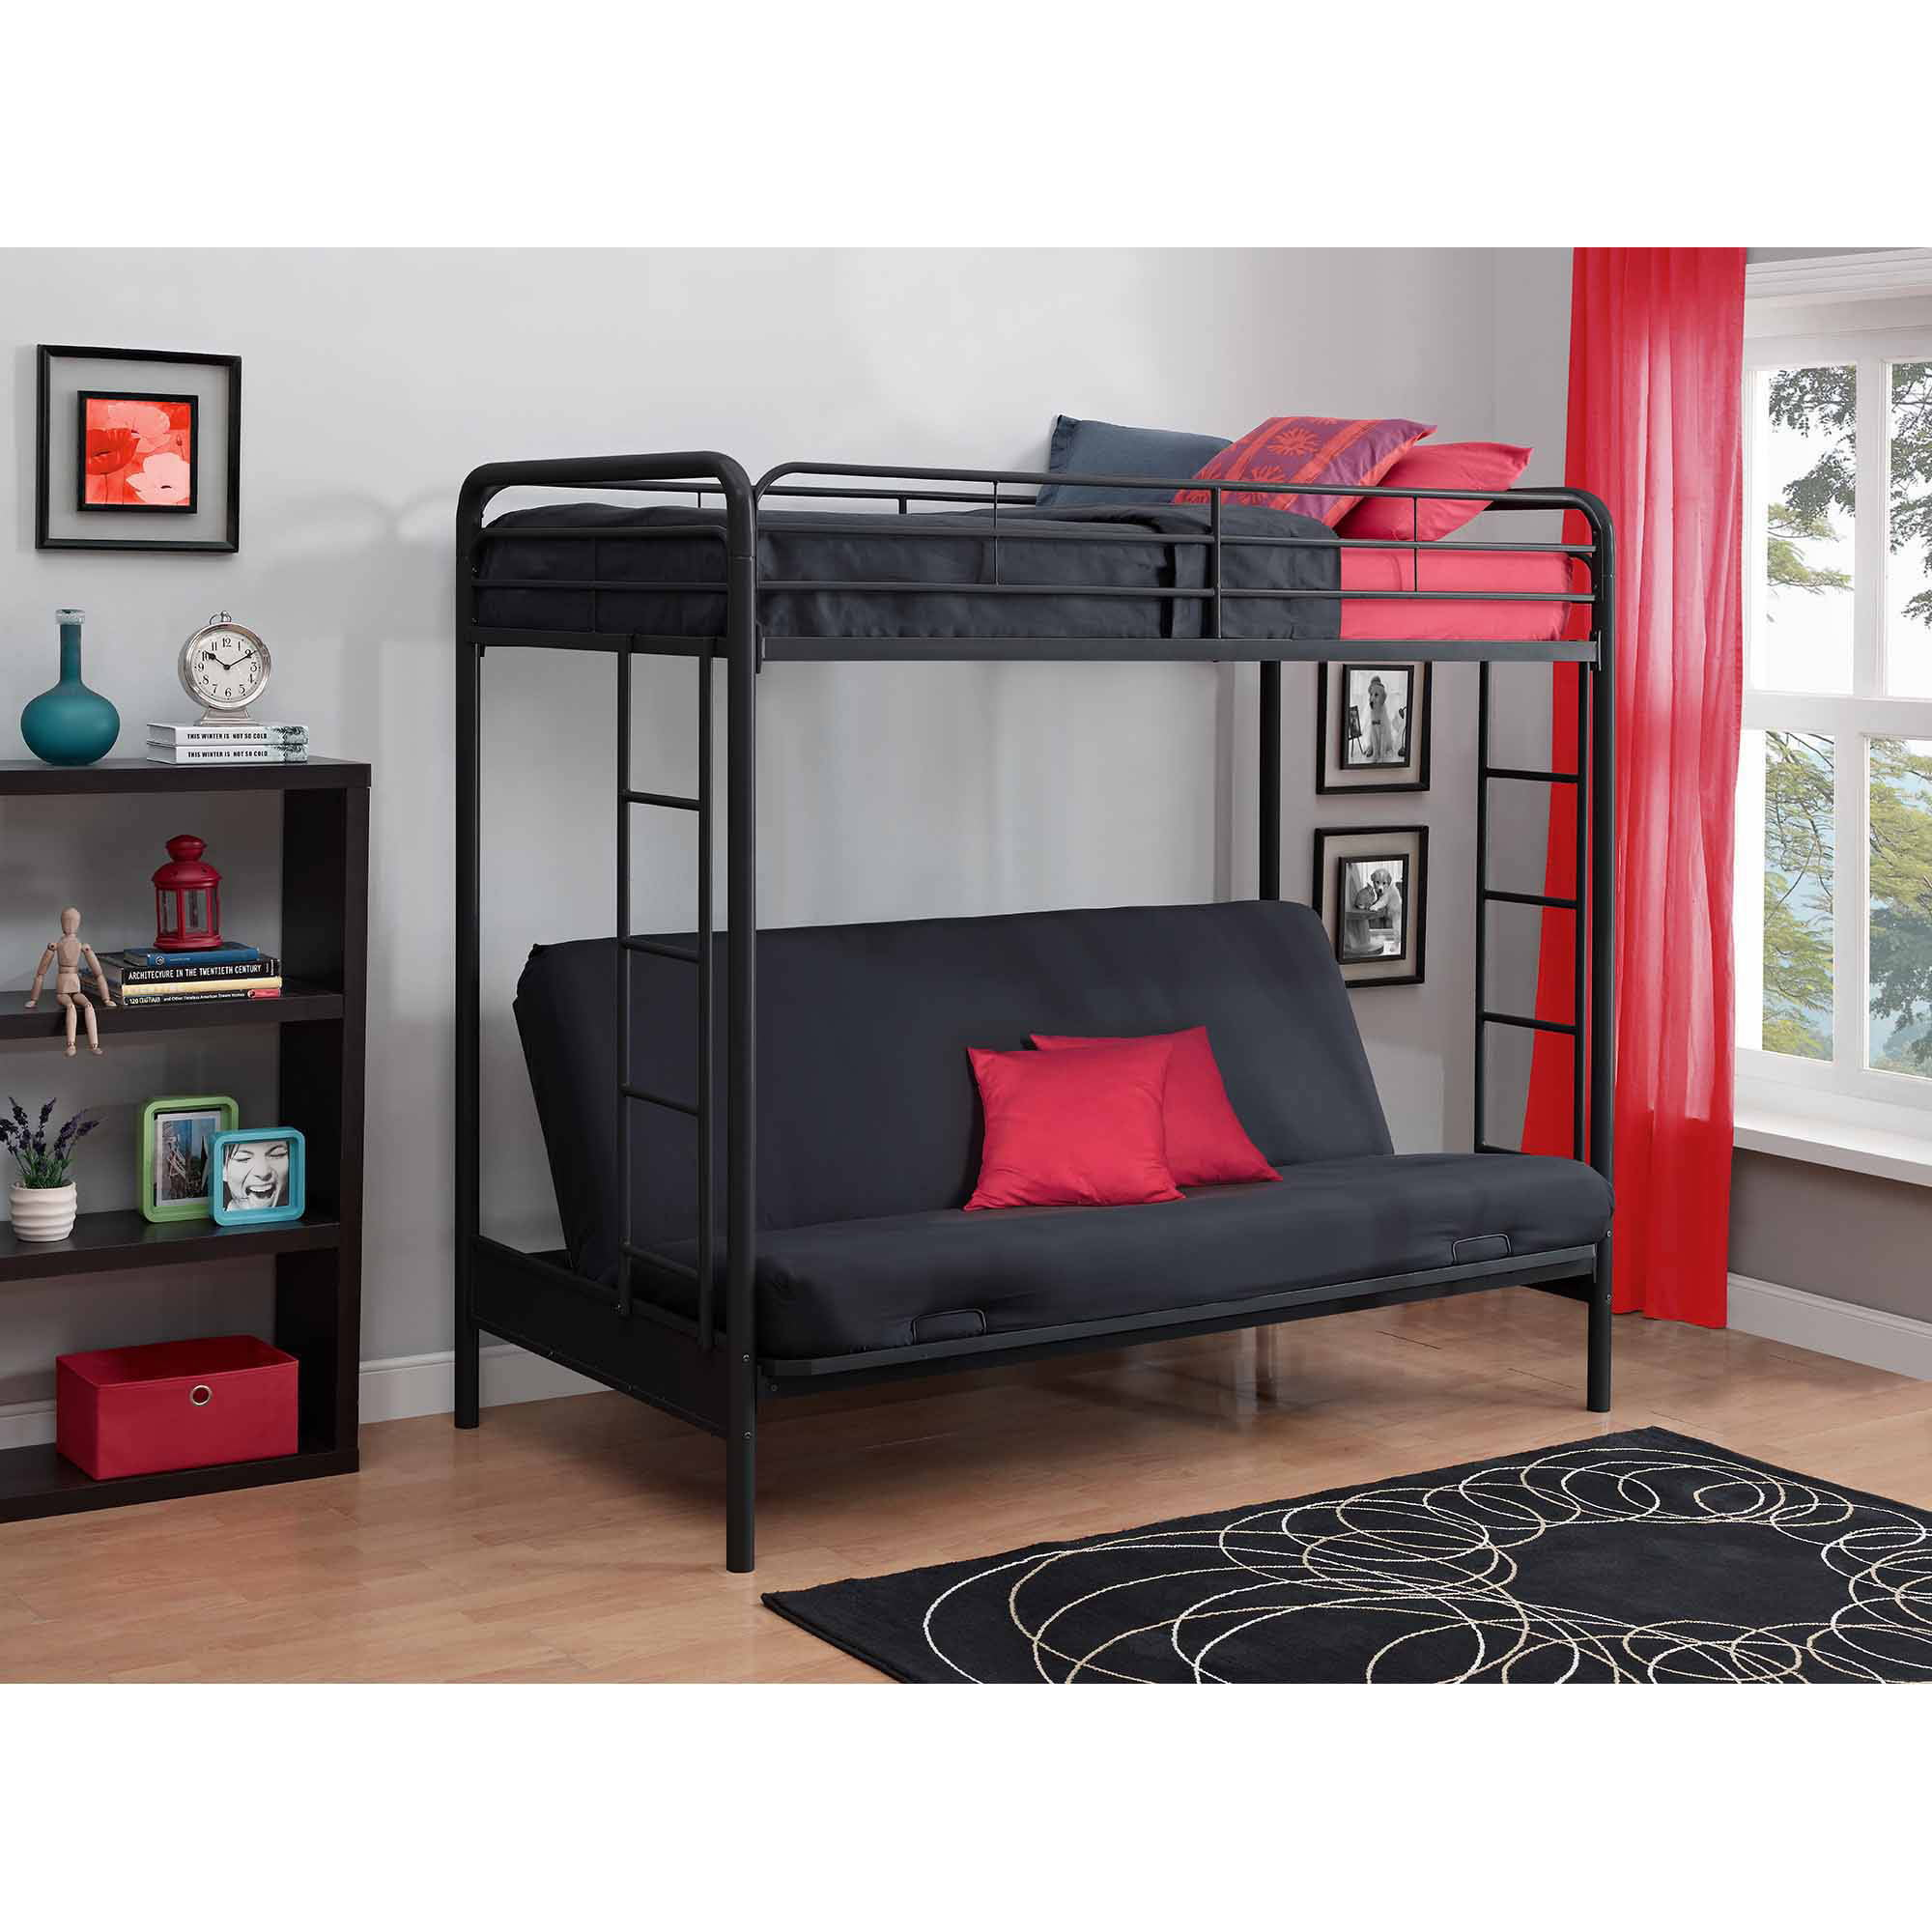 DHP Twin Over Futon Metal Bunk Bed, Multiple Colors - Walmart.com